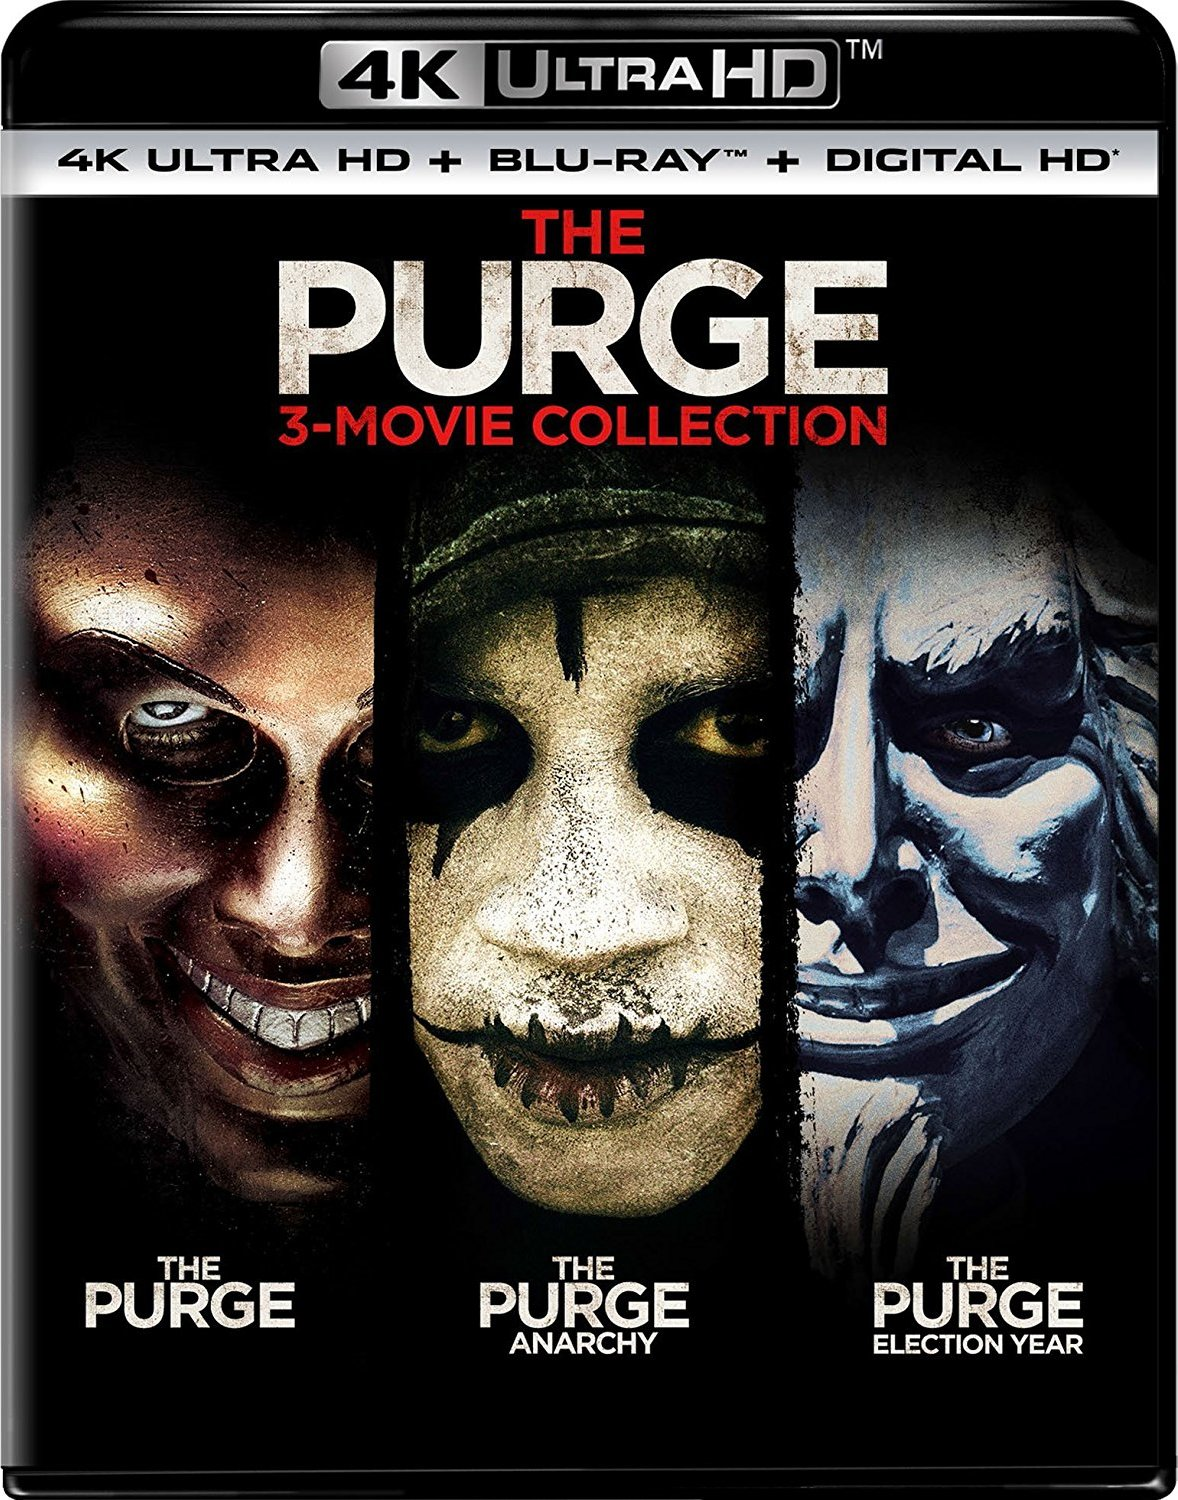 The Purge / The Purge: Anarchy / The Purge: Election Year 4K Ultra HD Blu-ray